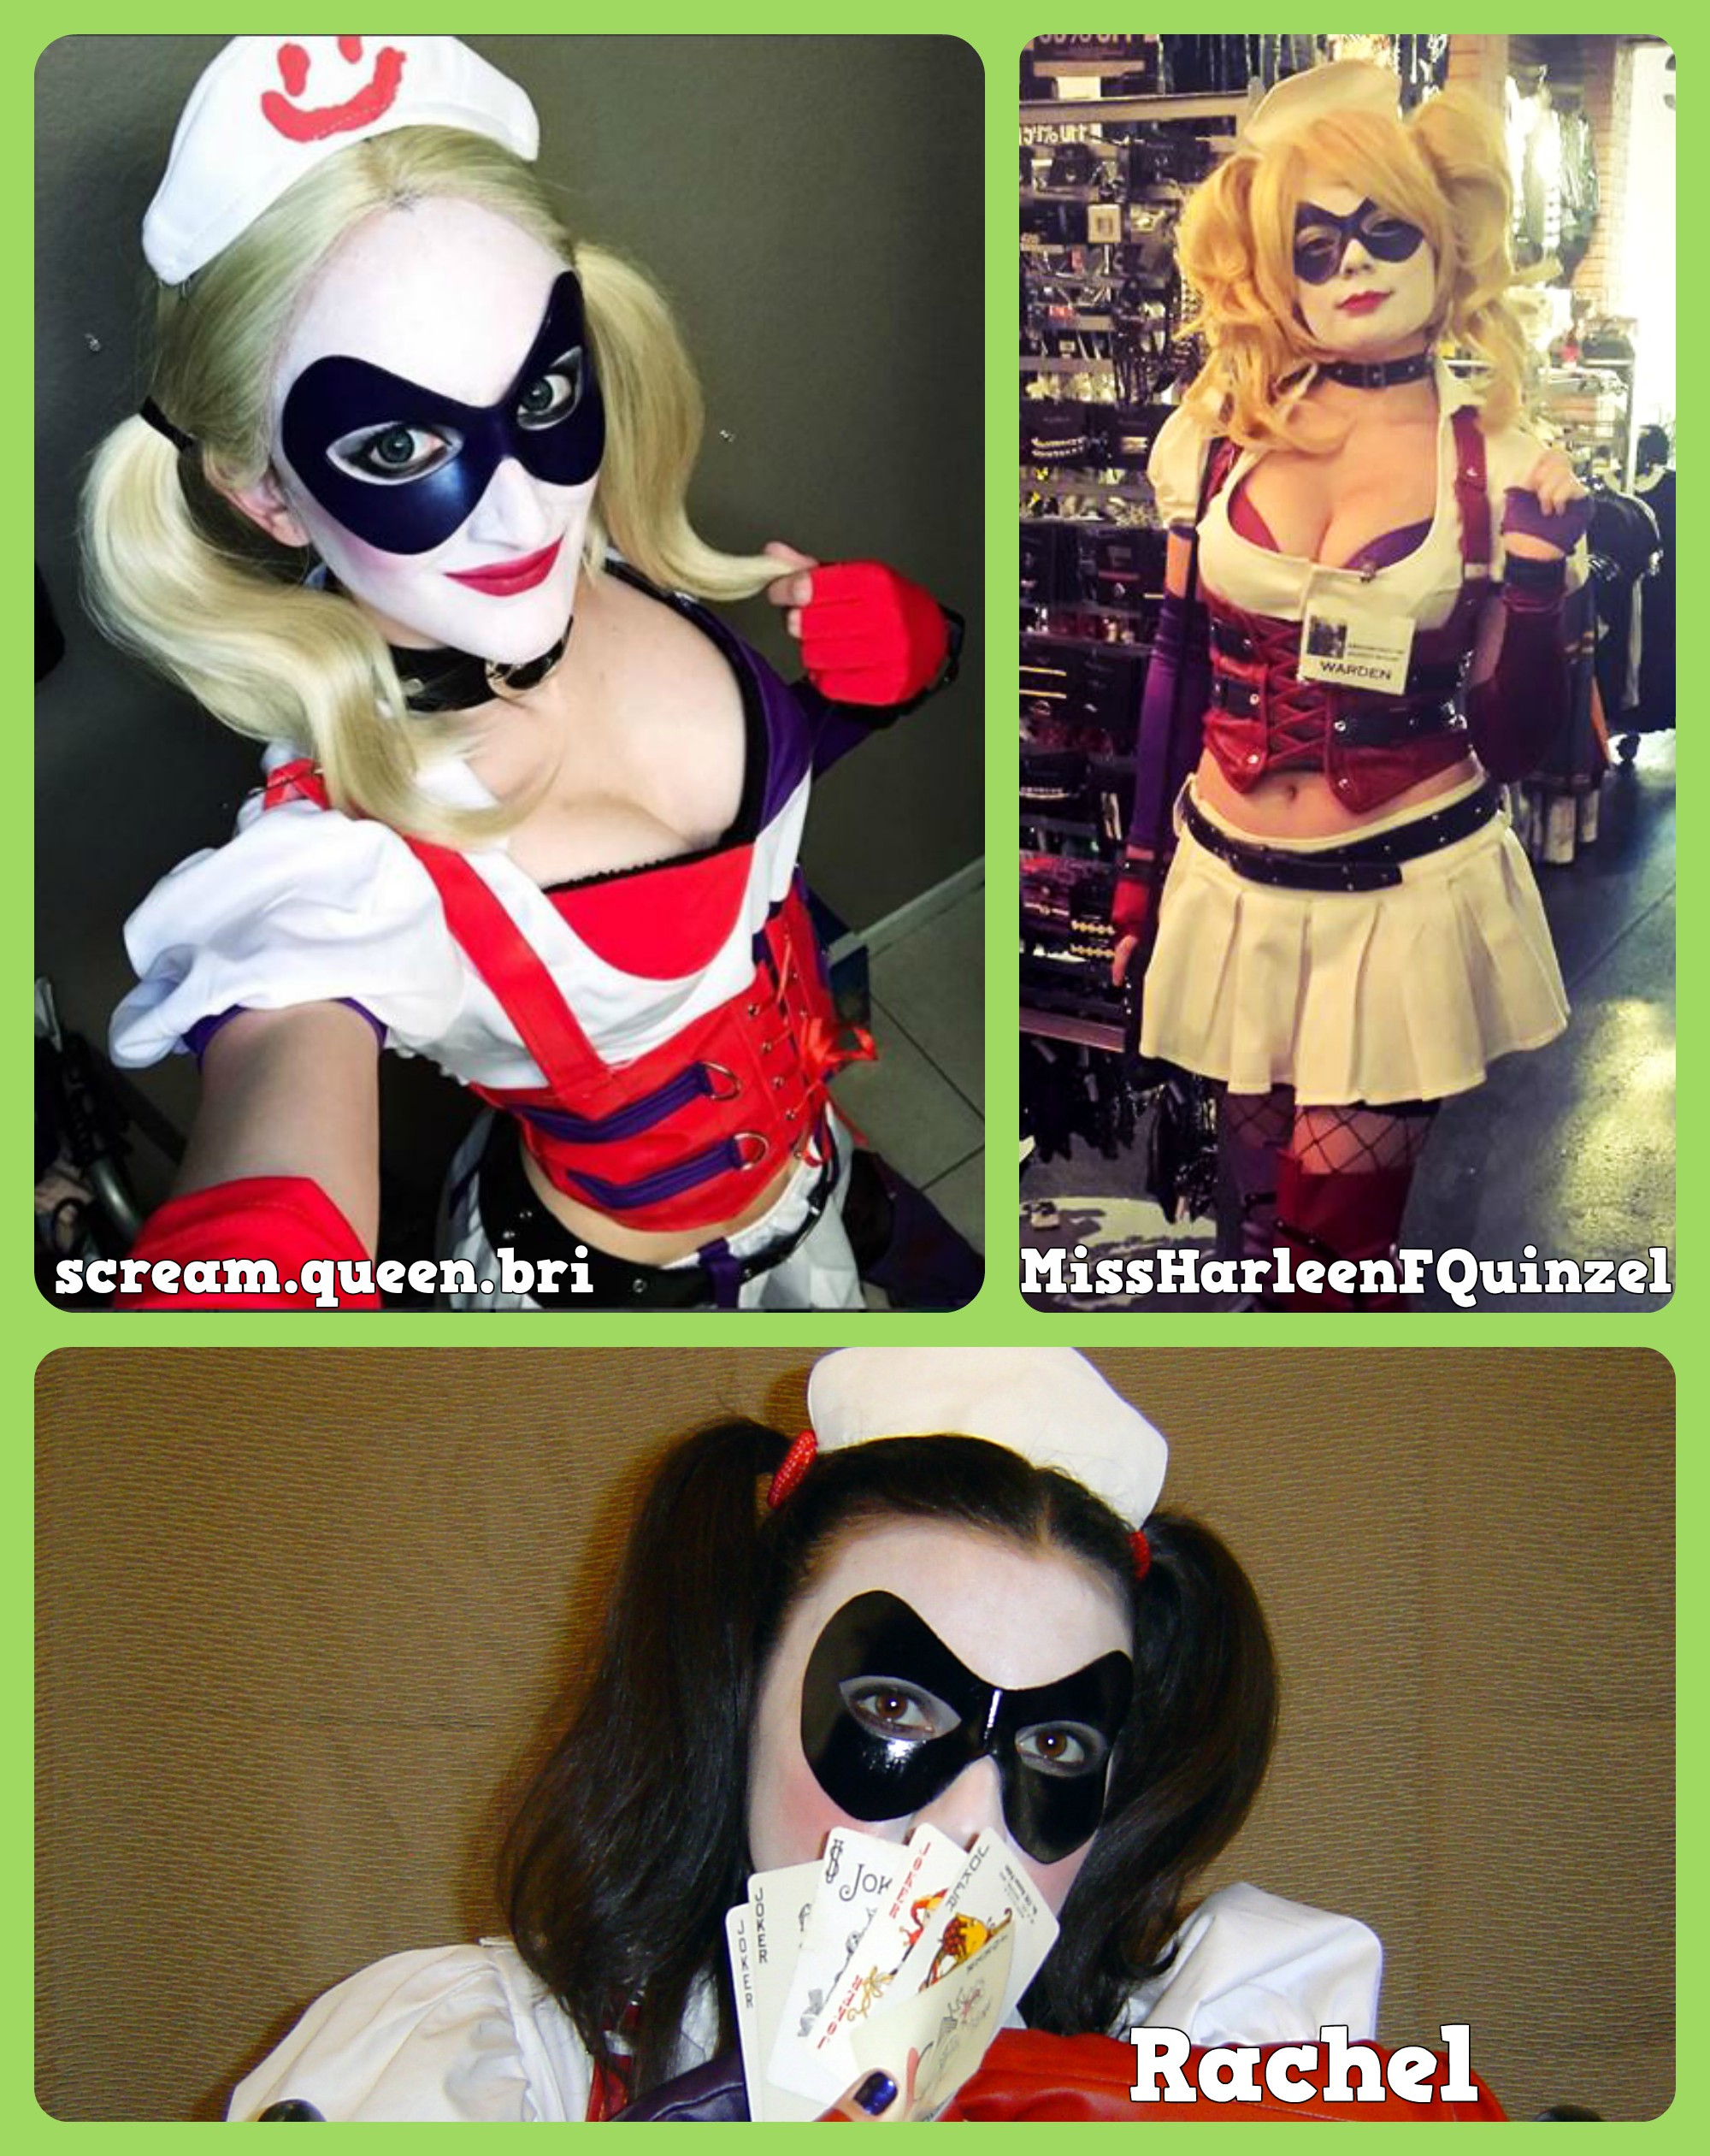 harley-quinn-asylum-mask-collage.jpg